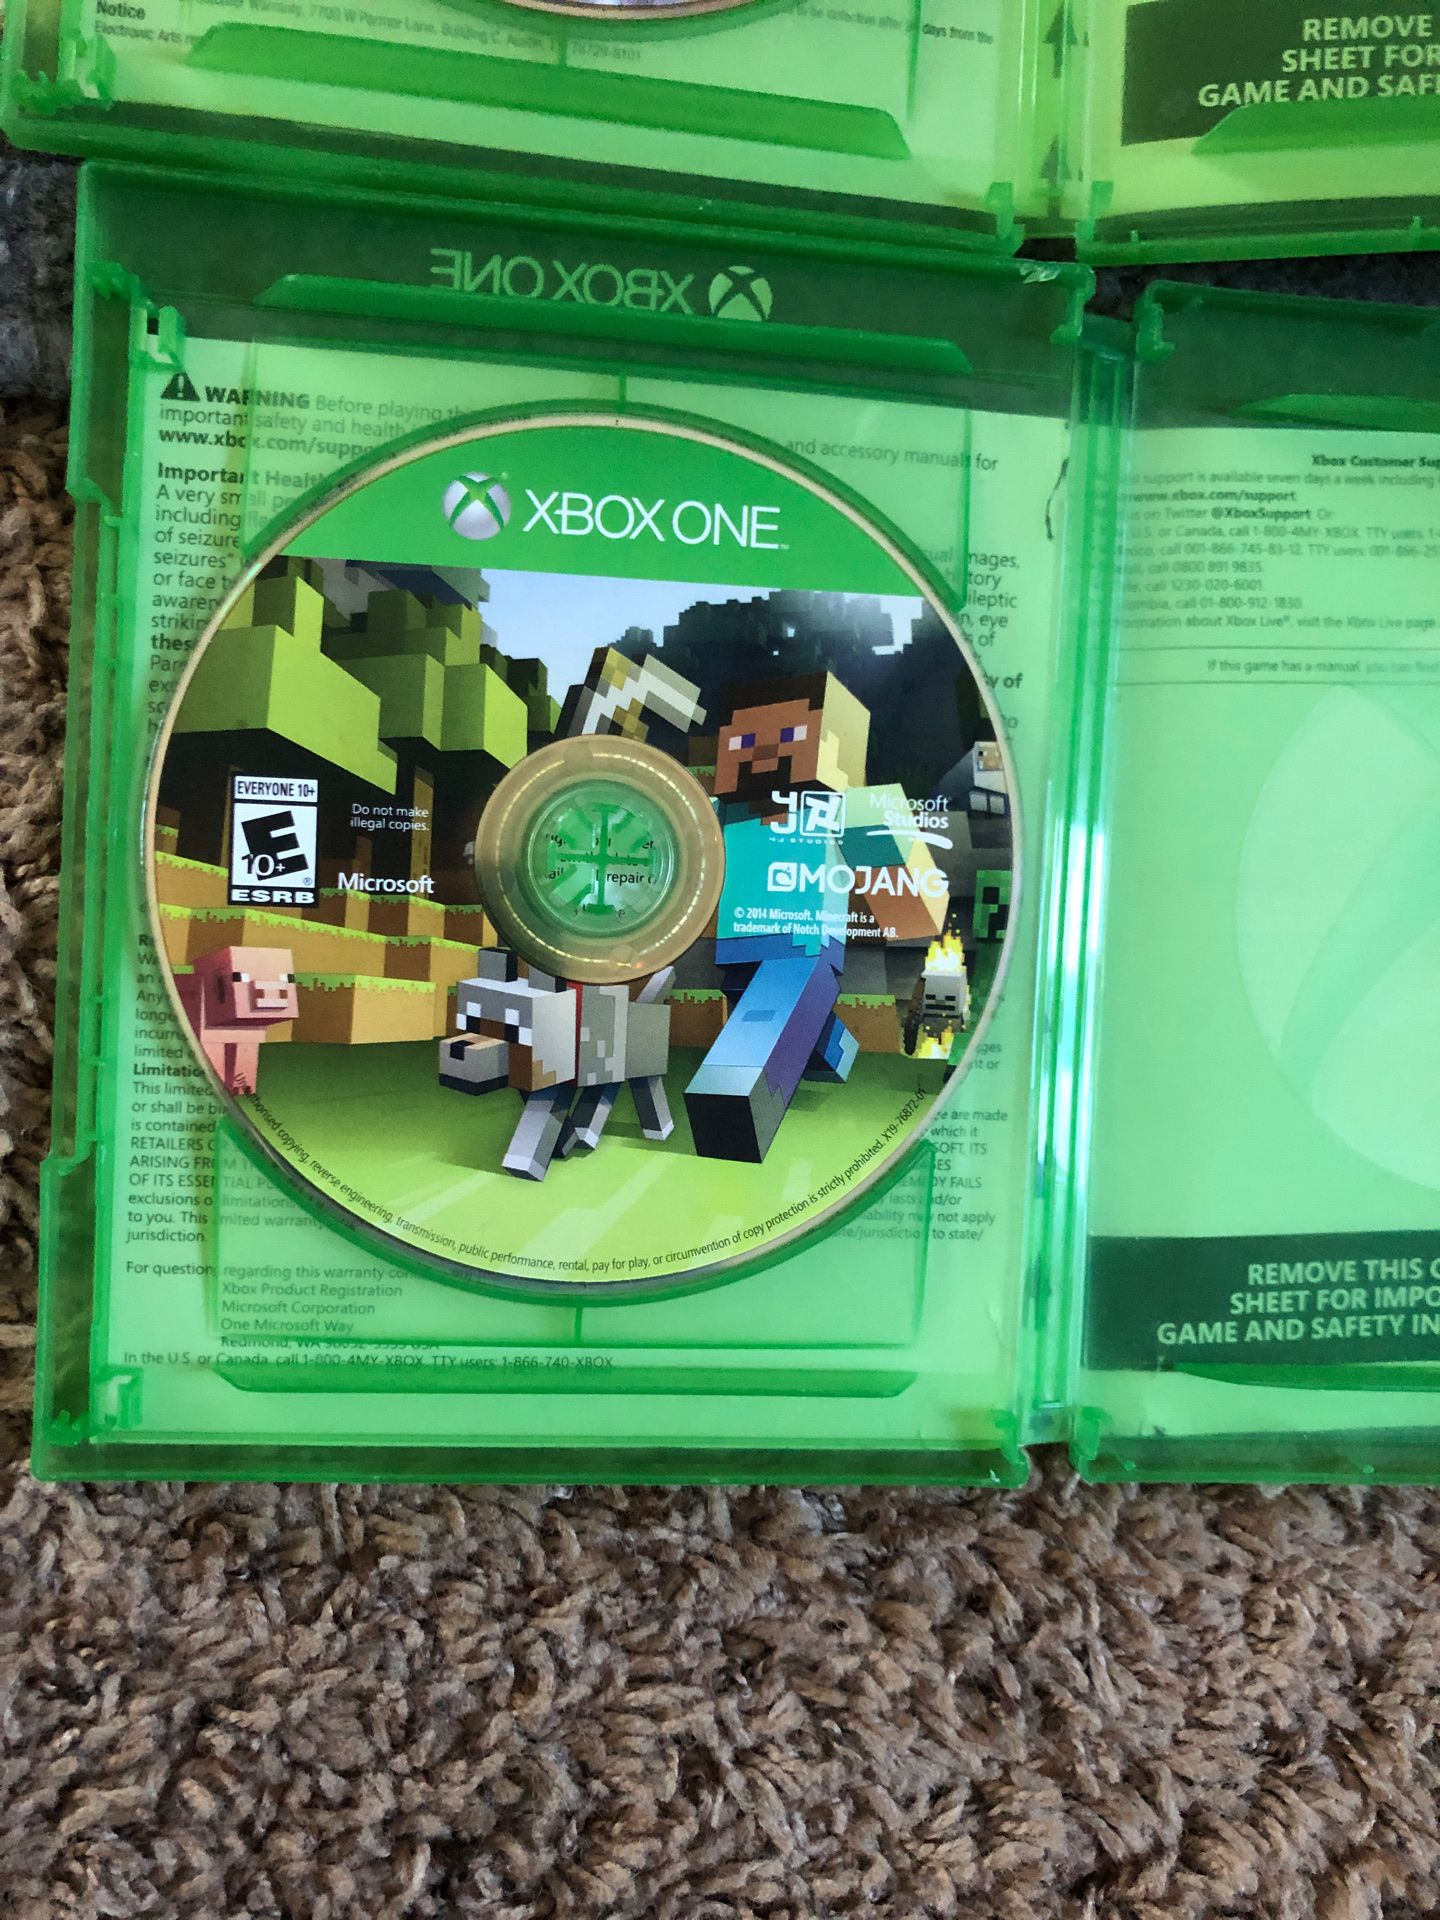 Selling Madden 15 and Minecraft. No scratches. Used. Good condition